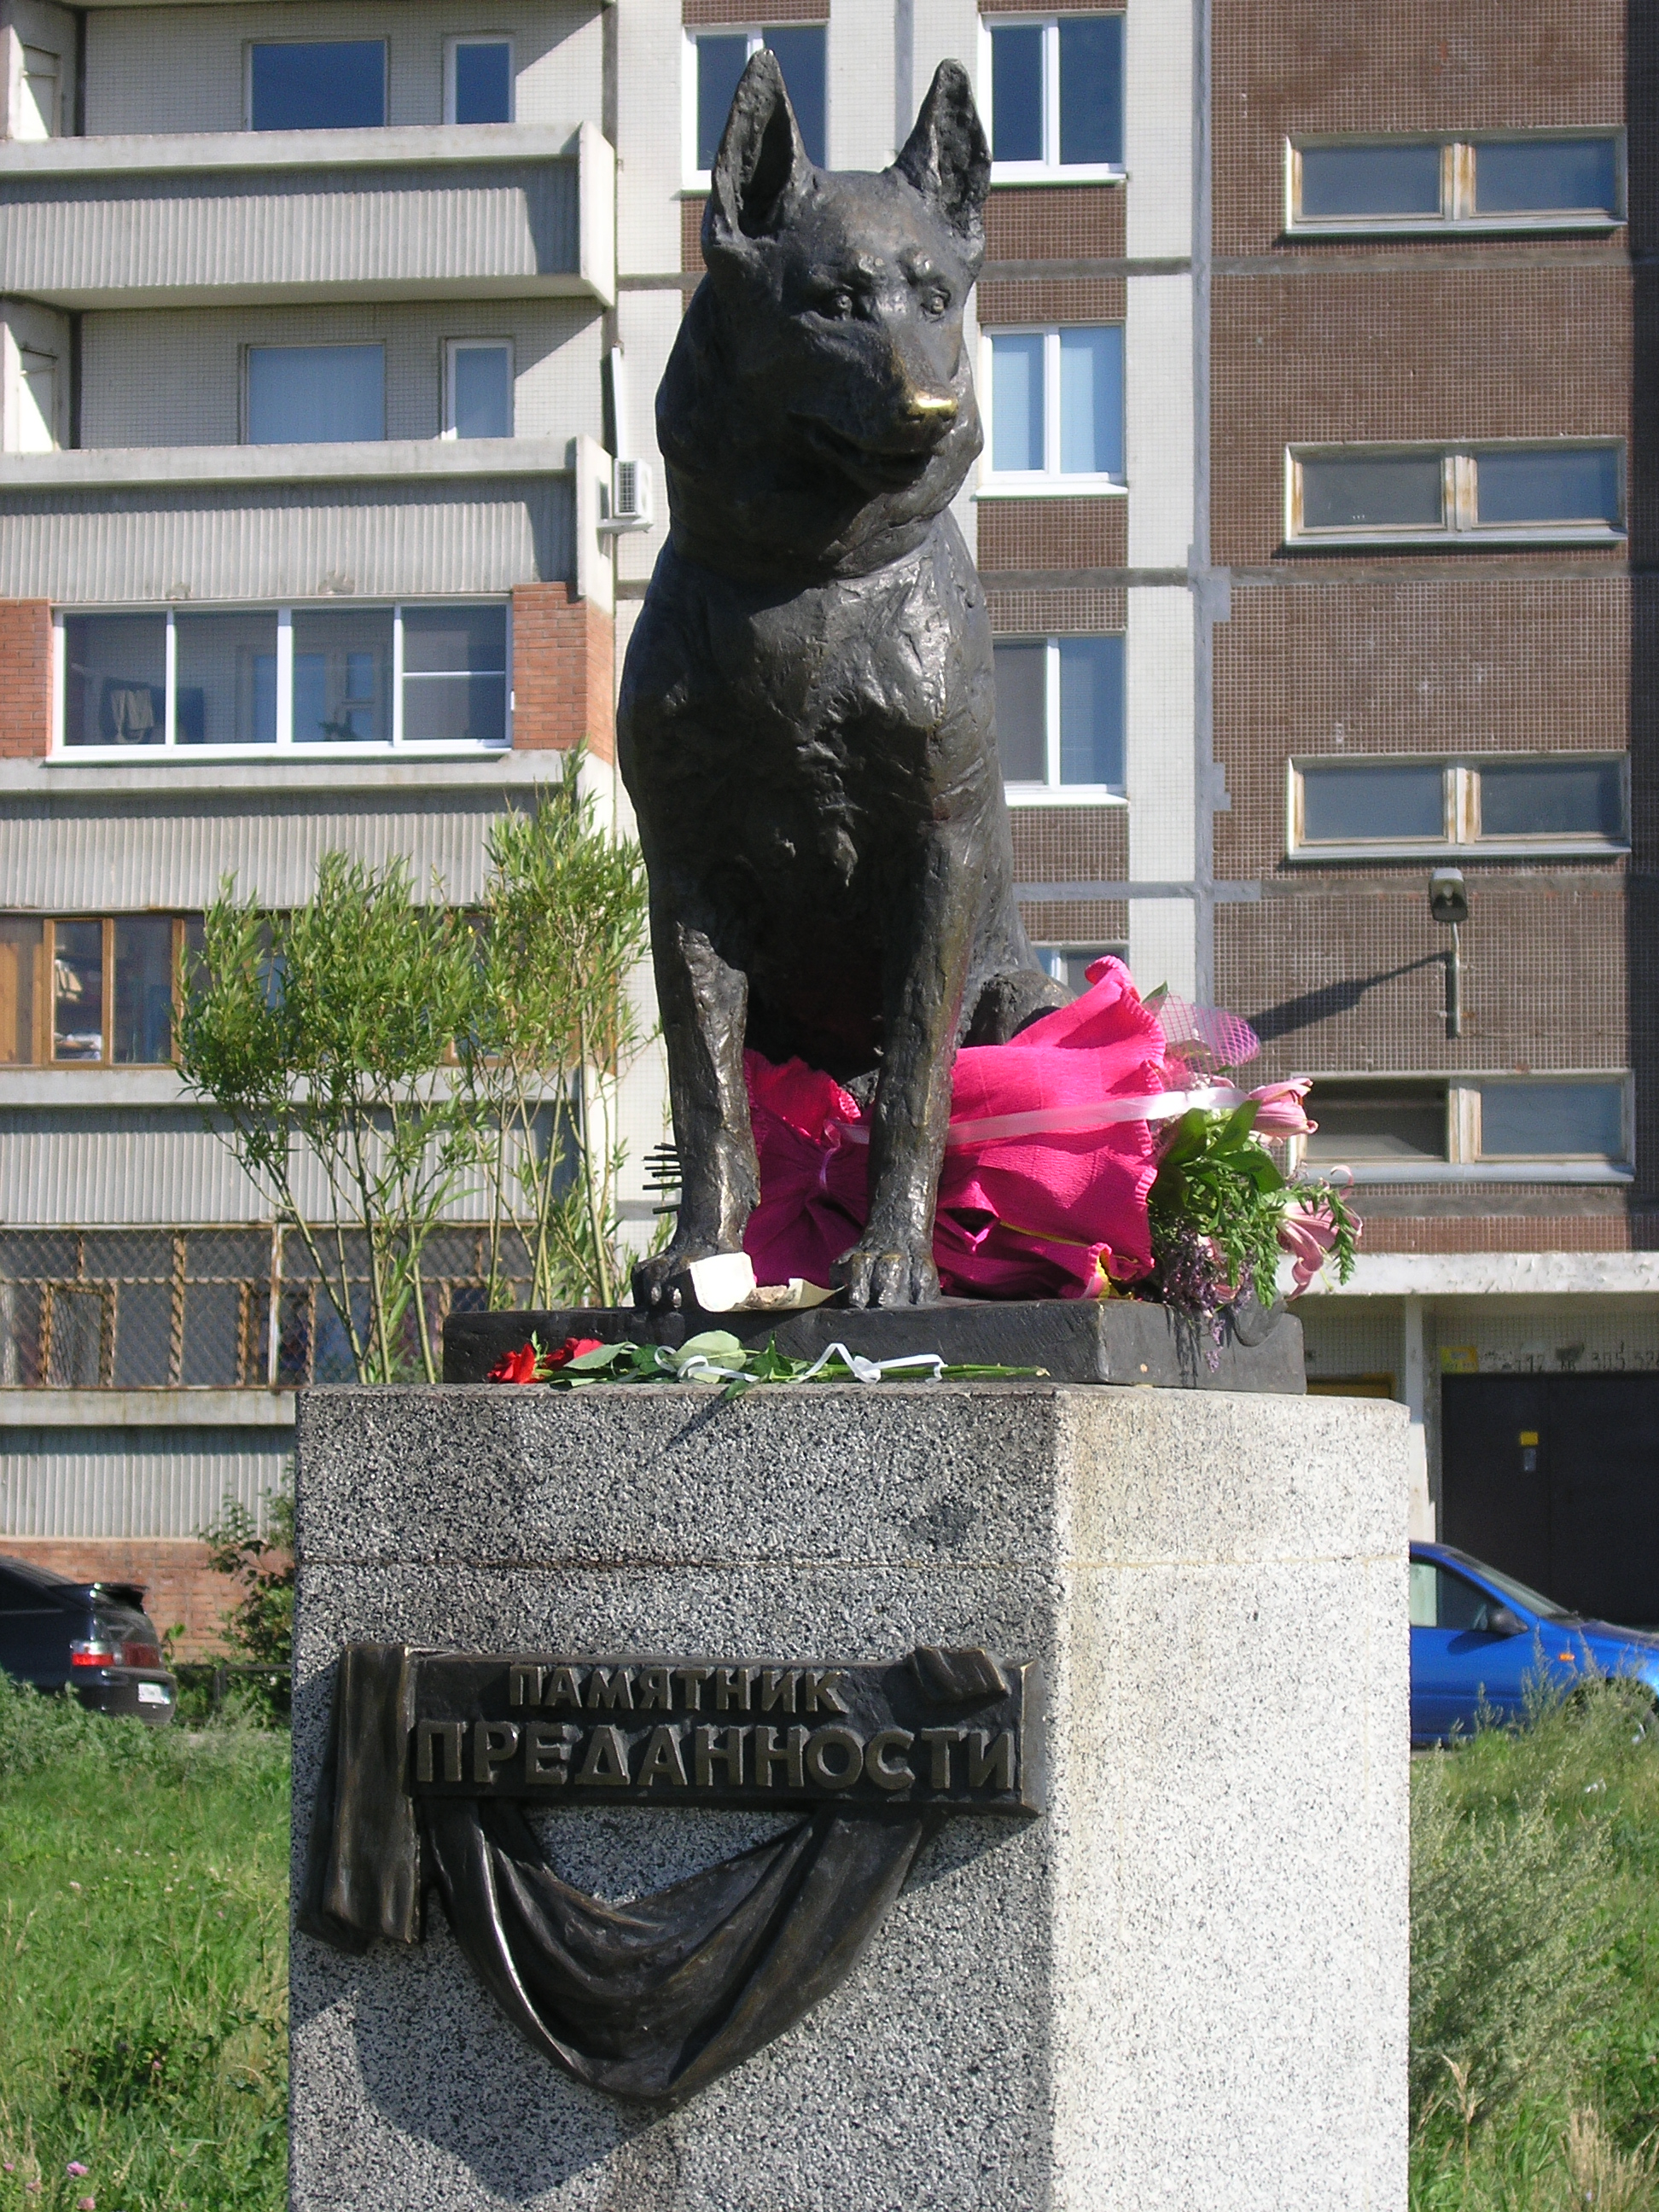 http://upload.wikimedia.org/wikipedia/commons/3/33/Dog_Monument%2C_Togliatti%2C_Russia.JPG